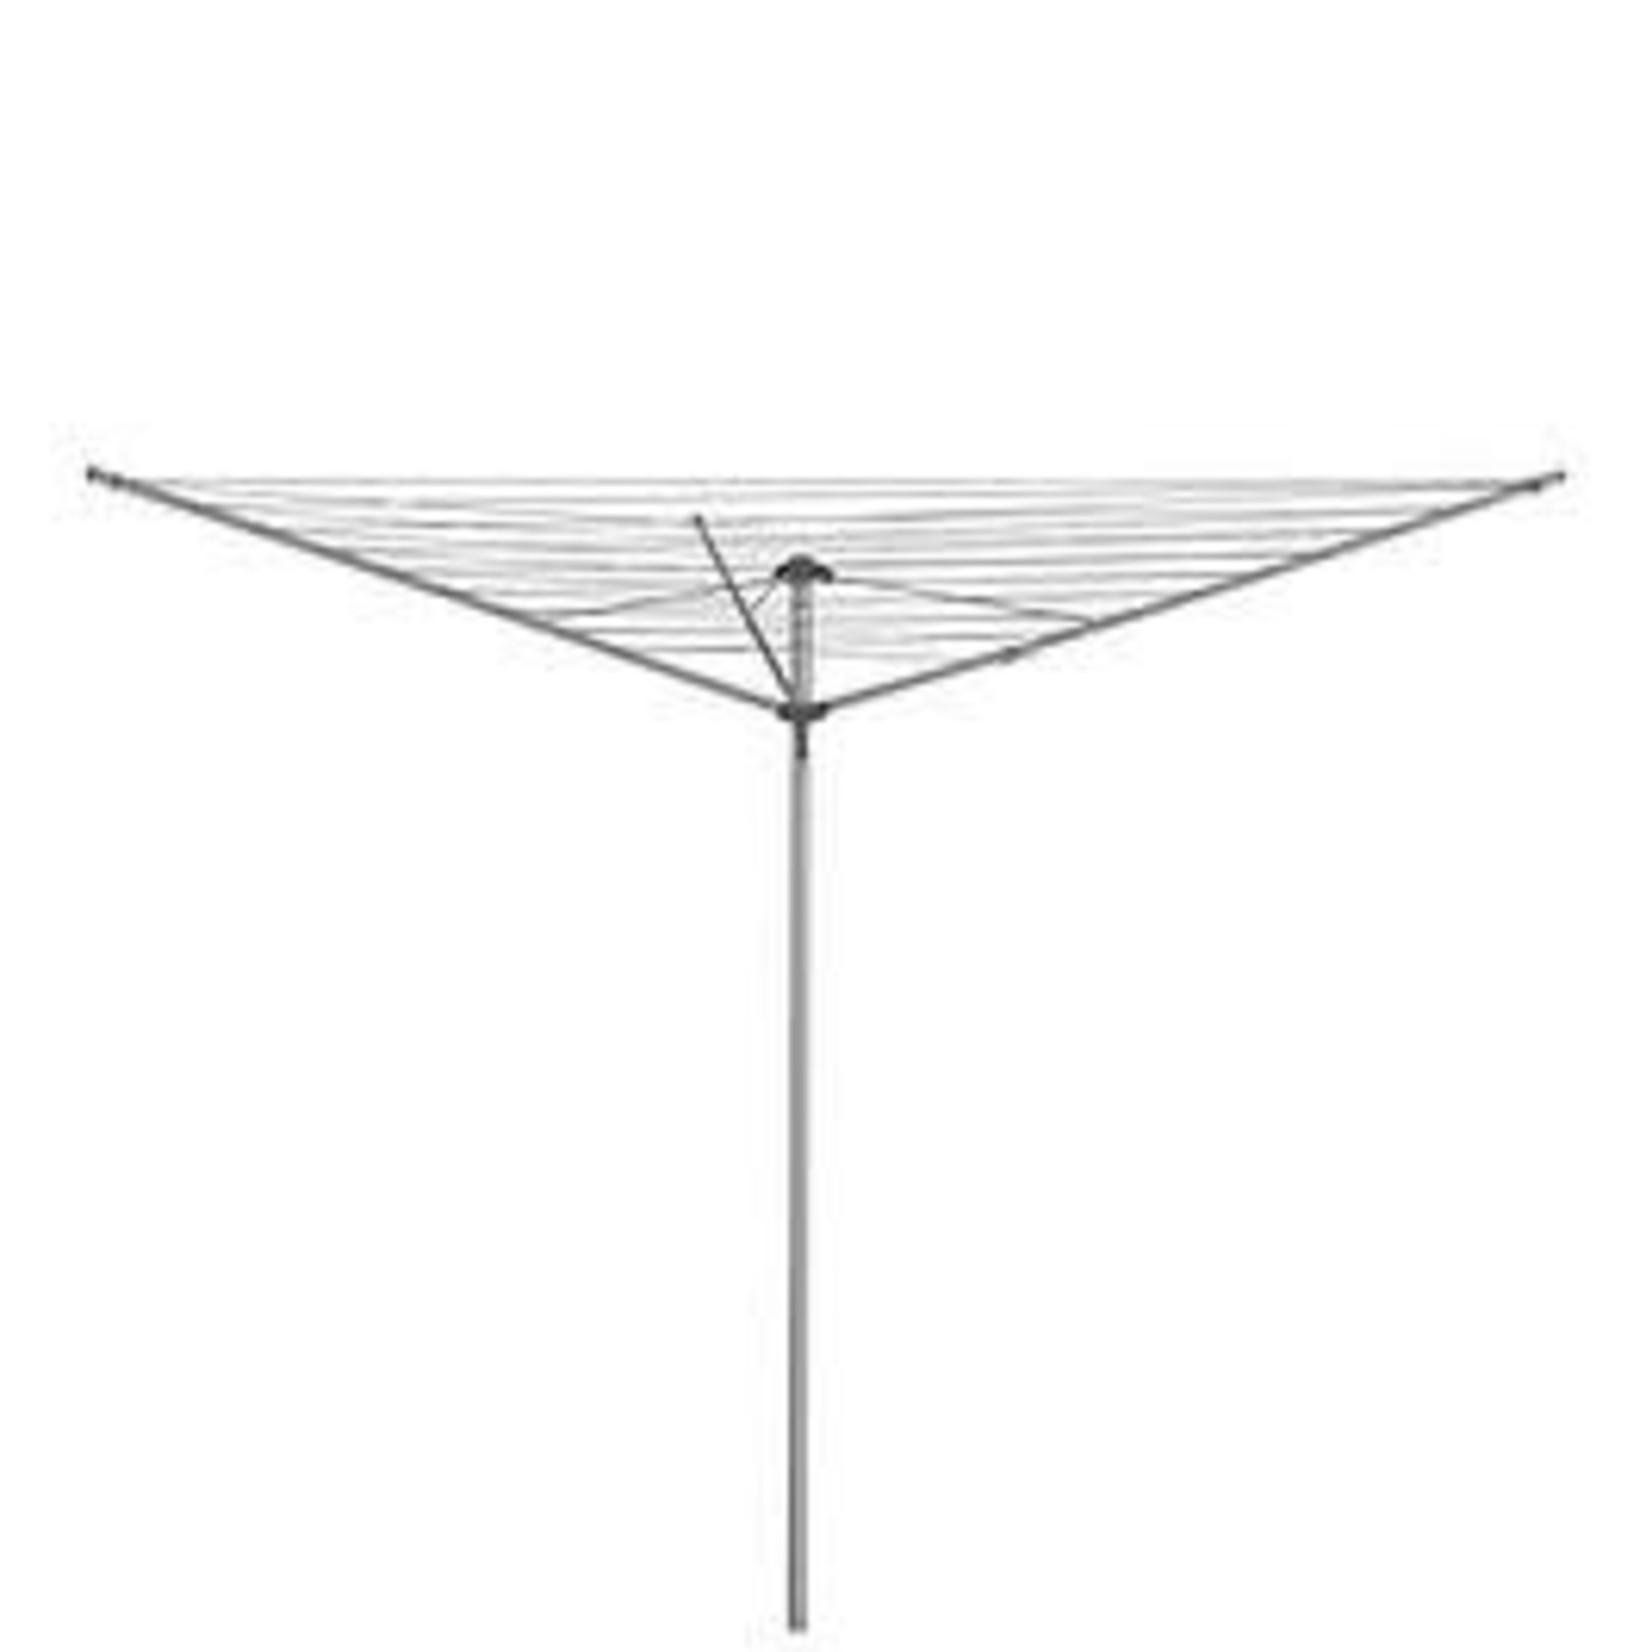 Addis ADDIS 3 ARM 35M ROTARY AIRER GRAPHITE/METALLIC